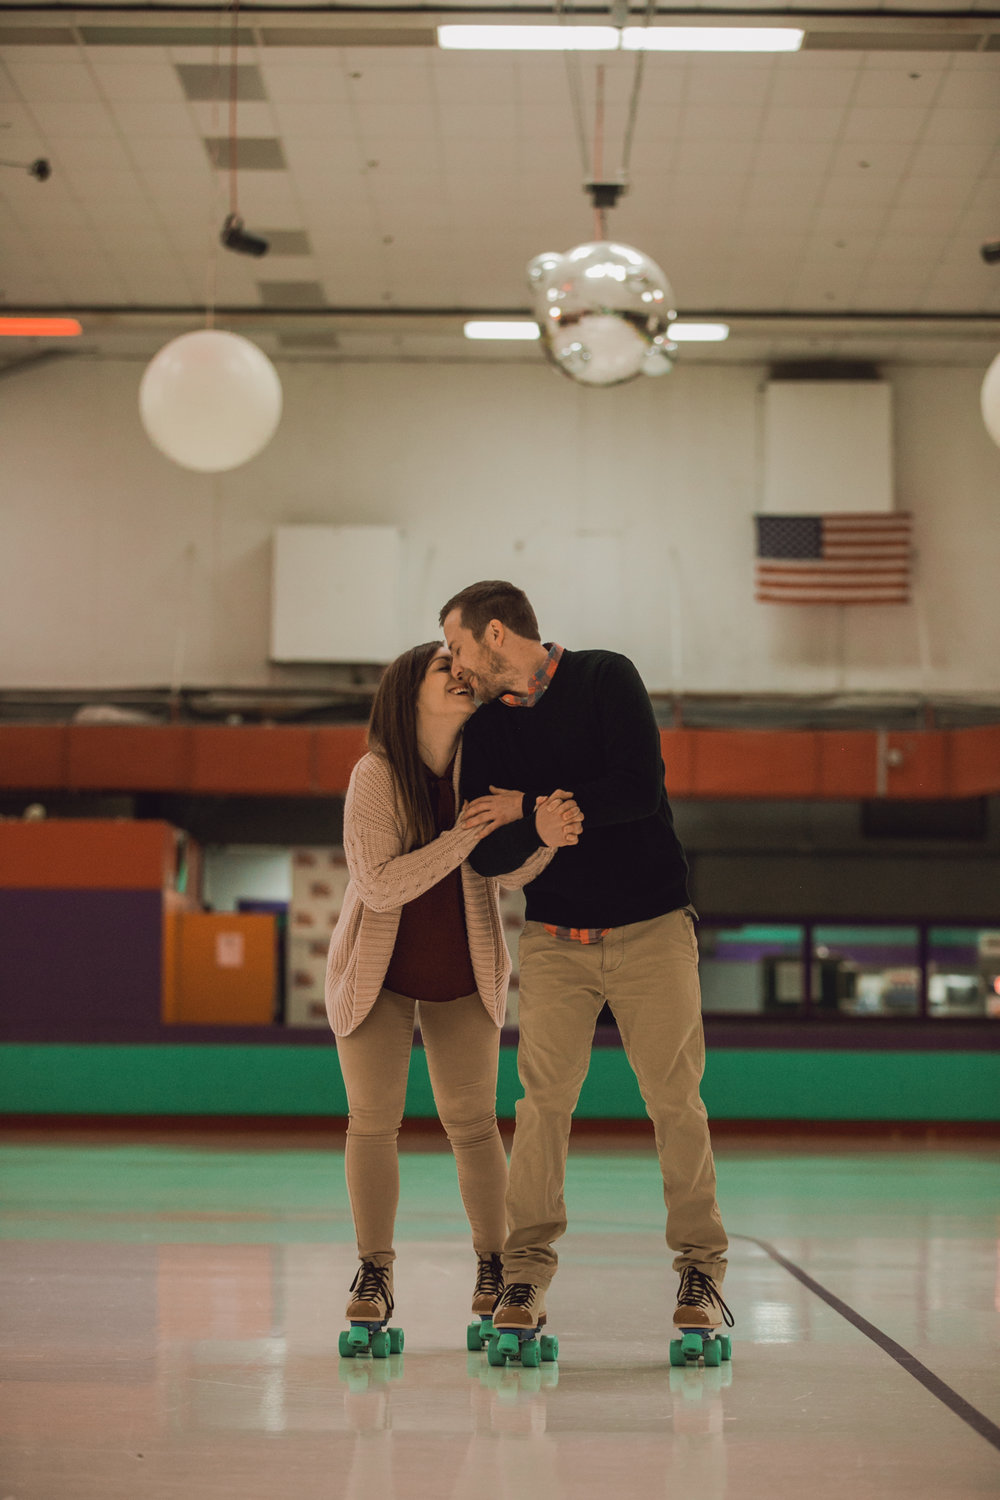 roller rink engagement session, wooddale fun zone engagement session, roller skate engagement session, minneapolis cafe lucrat engagment session, cafe lucrat engagement session, minneapolis minnesota engagement session-www.rachelsmak.com11.jpg